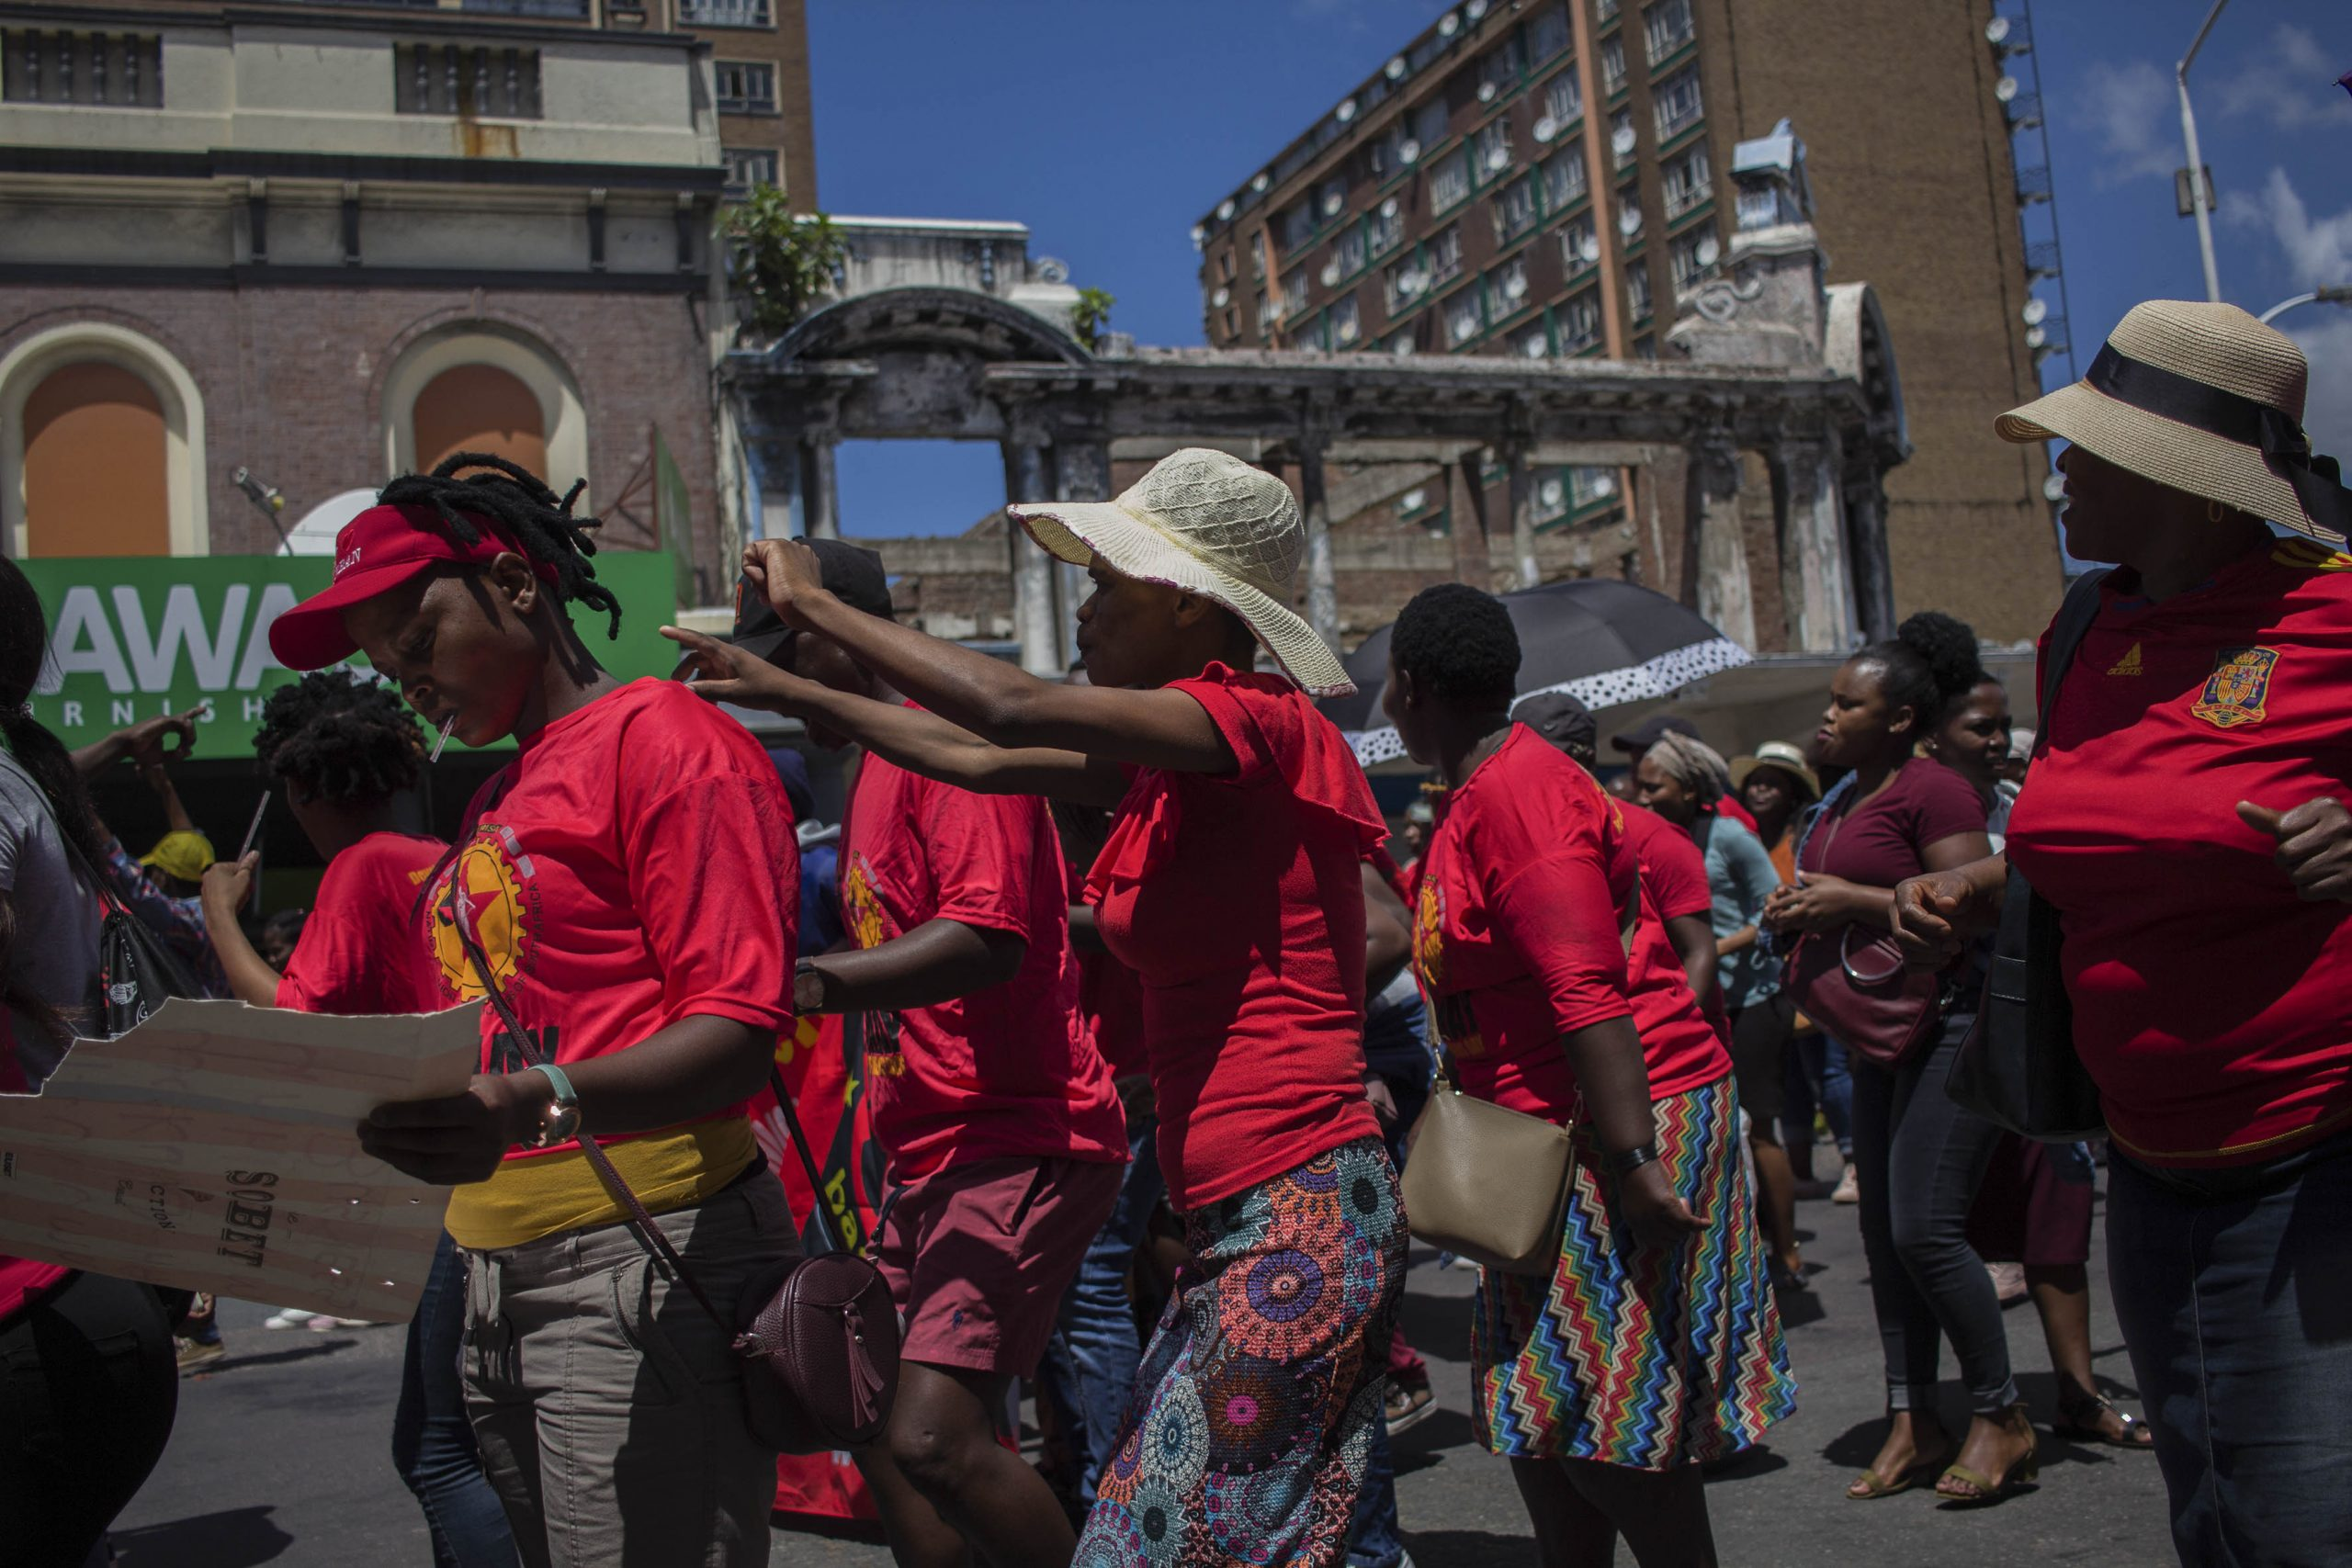 24 February 2020: Members and supporters of Abahlali baseMjondolo took part in a march to submit proposals for the amendment of section 25 of the Constitution to allow for land expropriation without compensation.